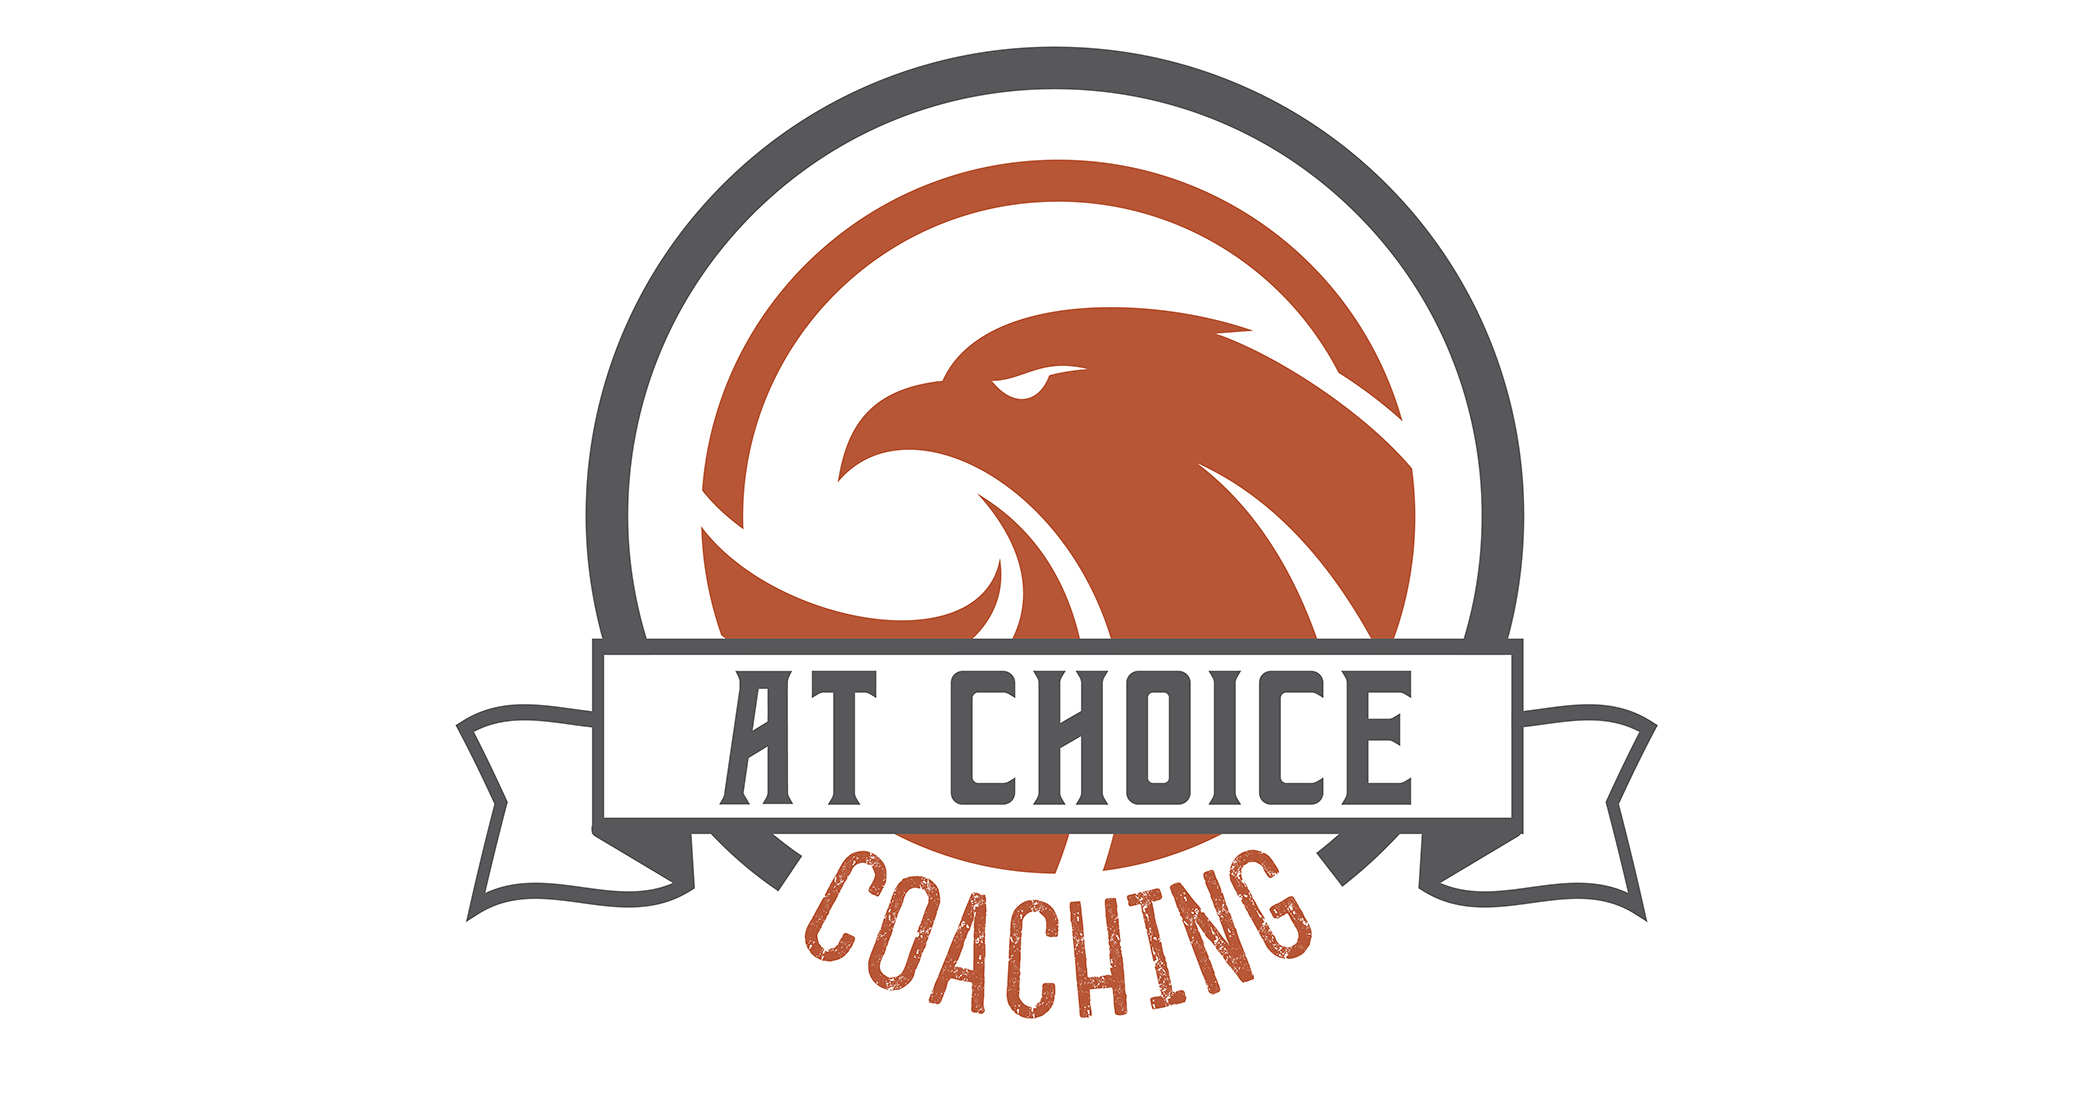 At Choice Coaching